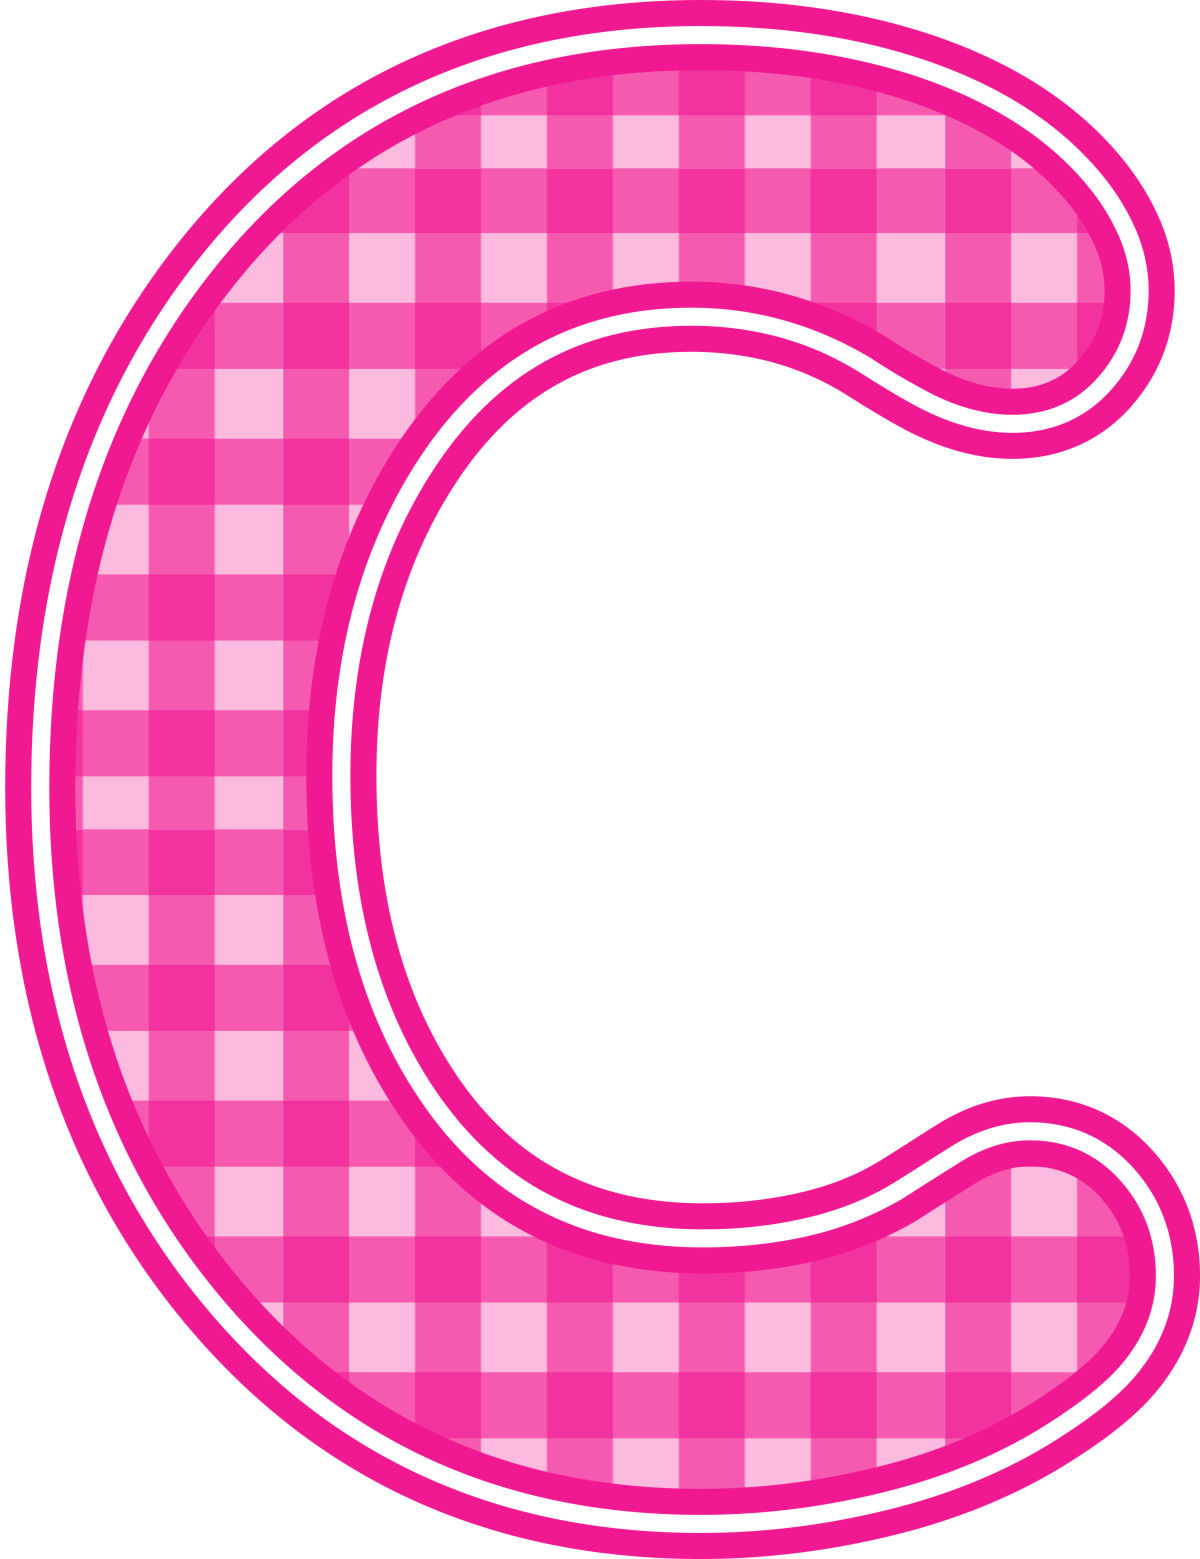 the letter c clipart color - Clipground